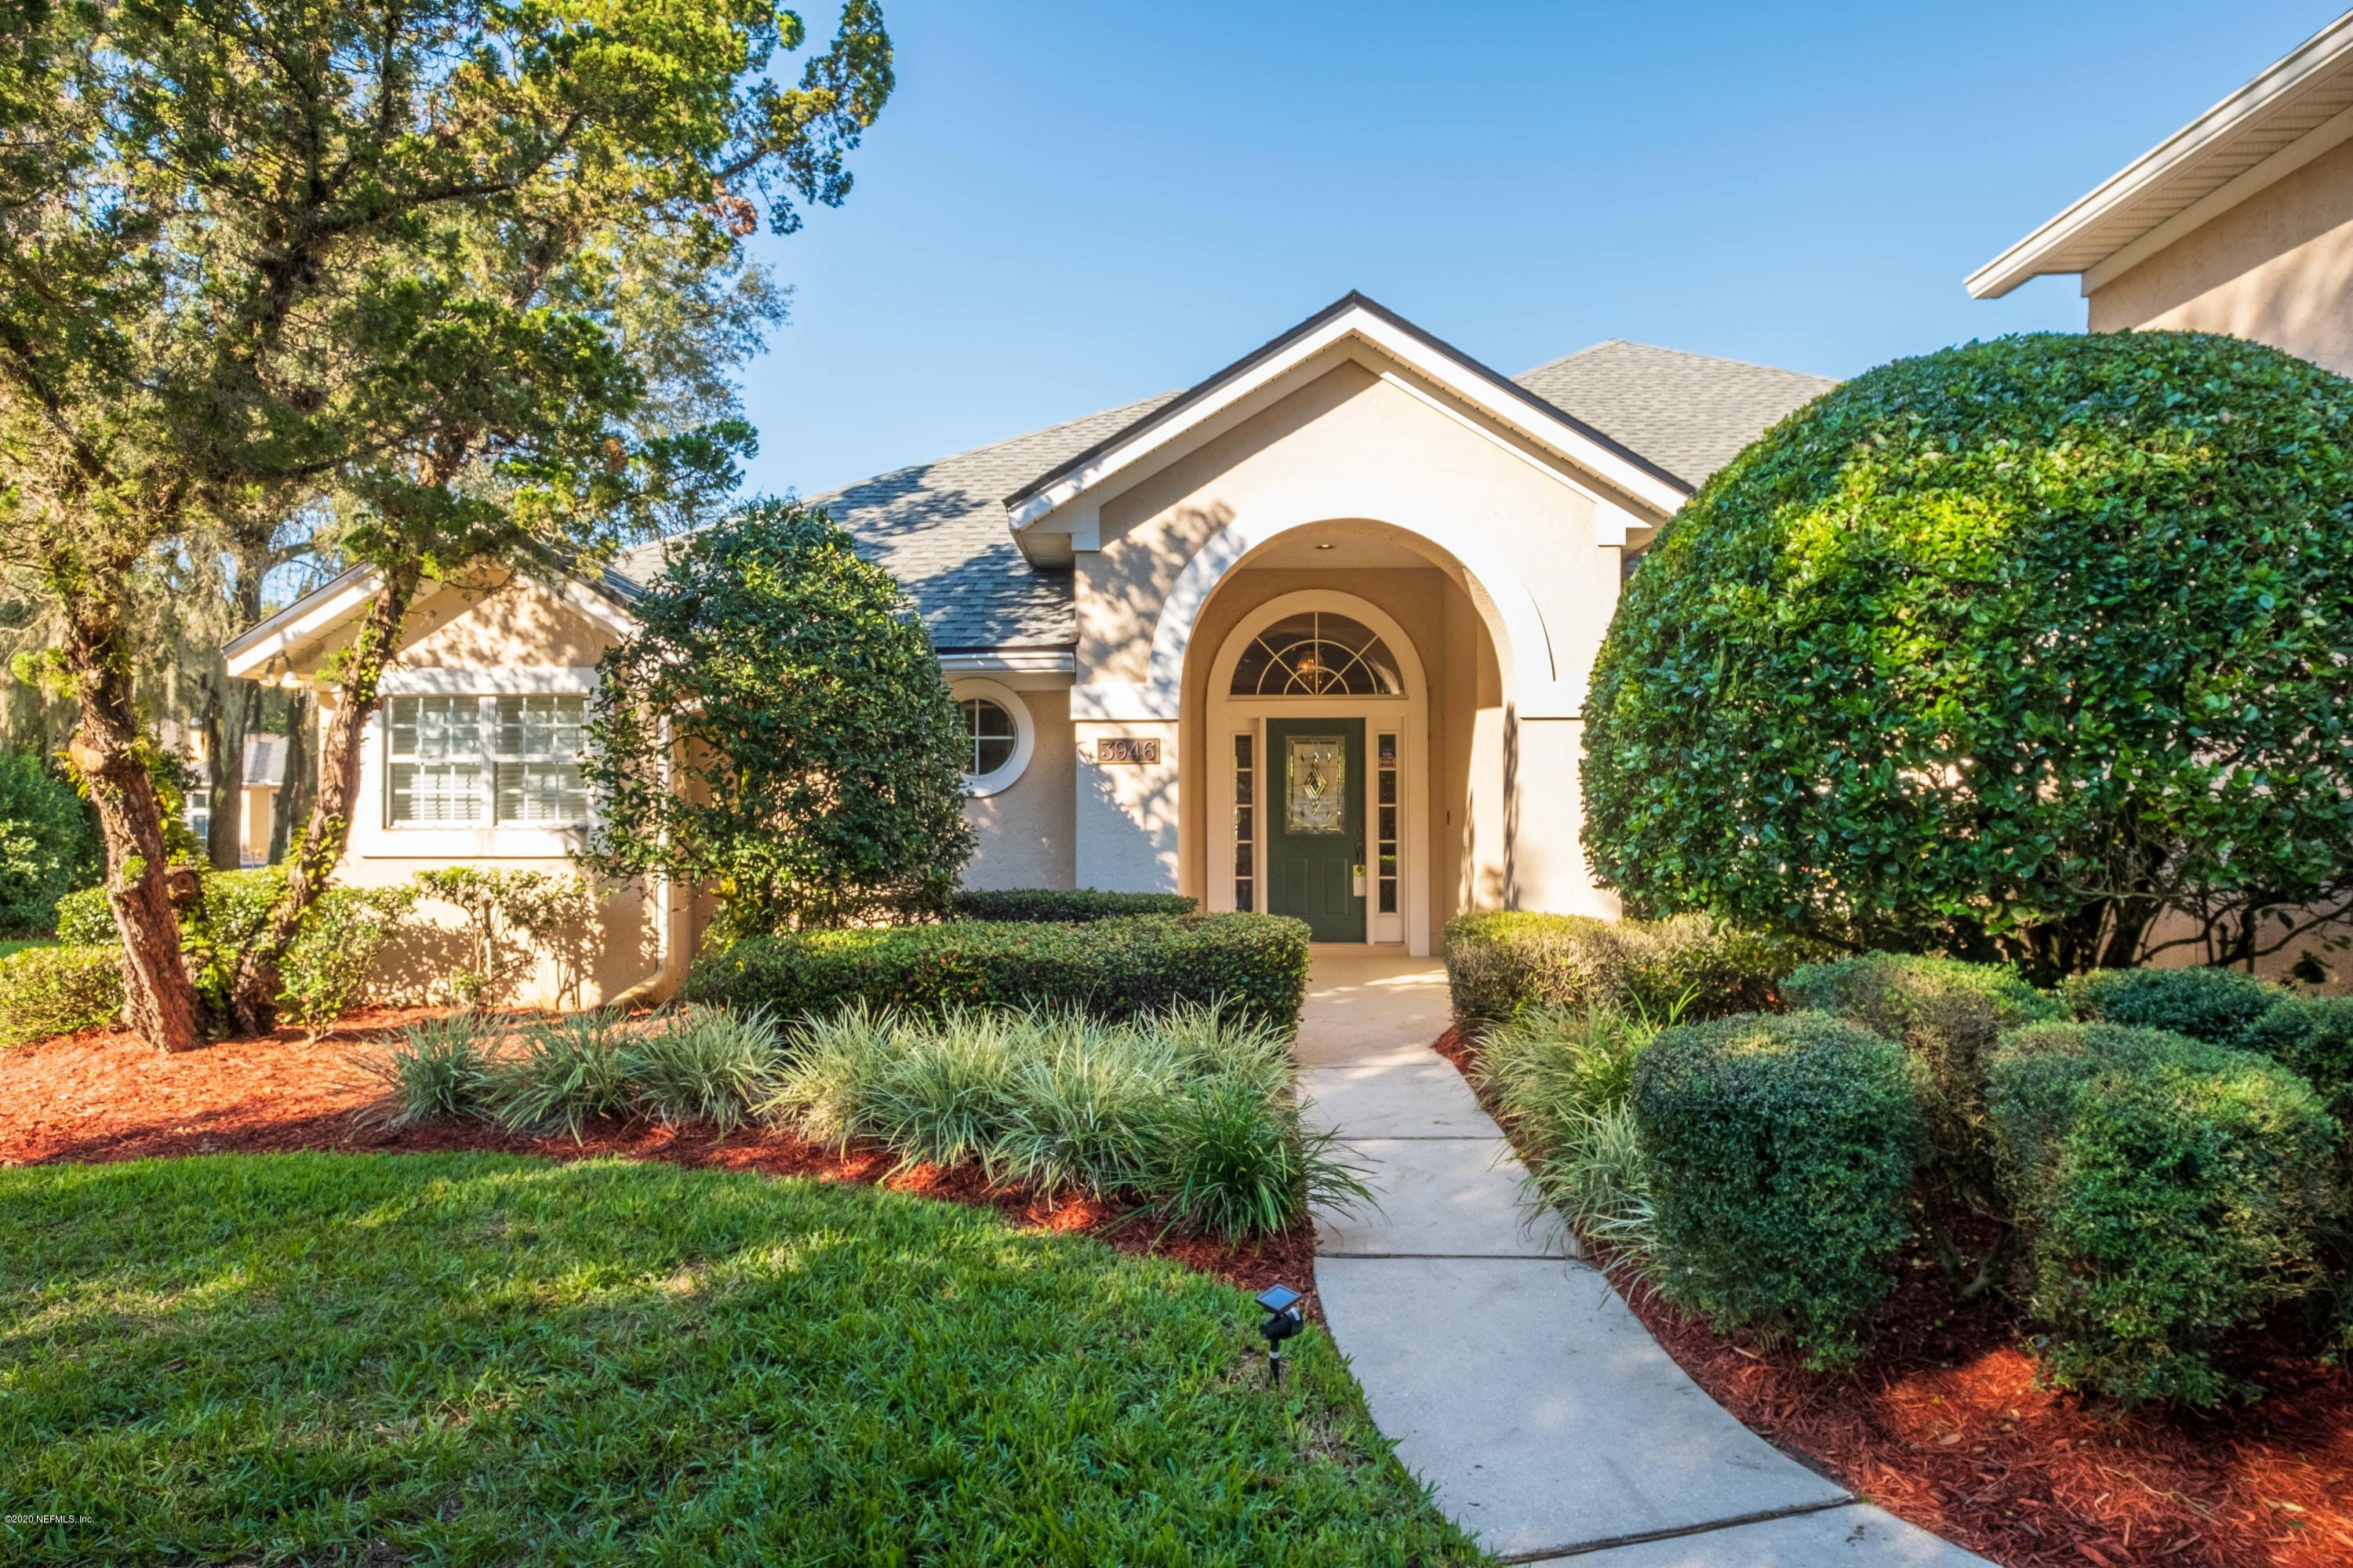 3946 CATTAIL POND, JACKSONVILLE, FLORIDA 32224, 4 Bedrooms Bedrooms, ,4 BathroomsBathrooms,Residential,For sale,CATTAIL POND,1082830